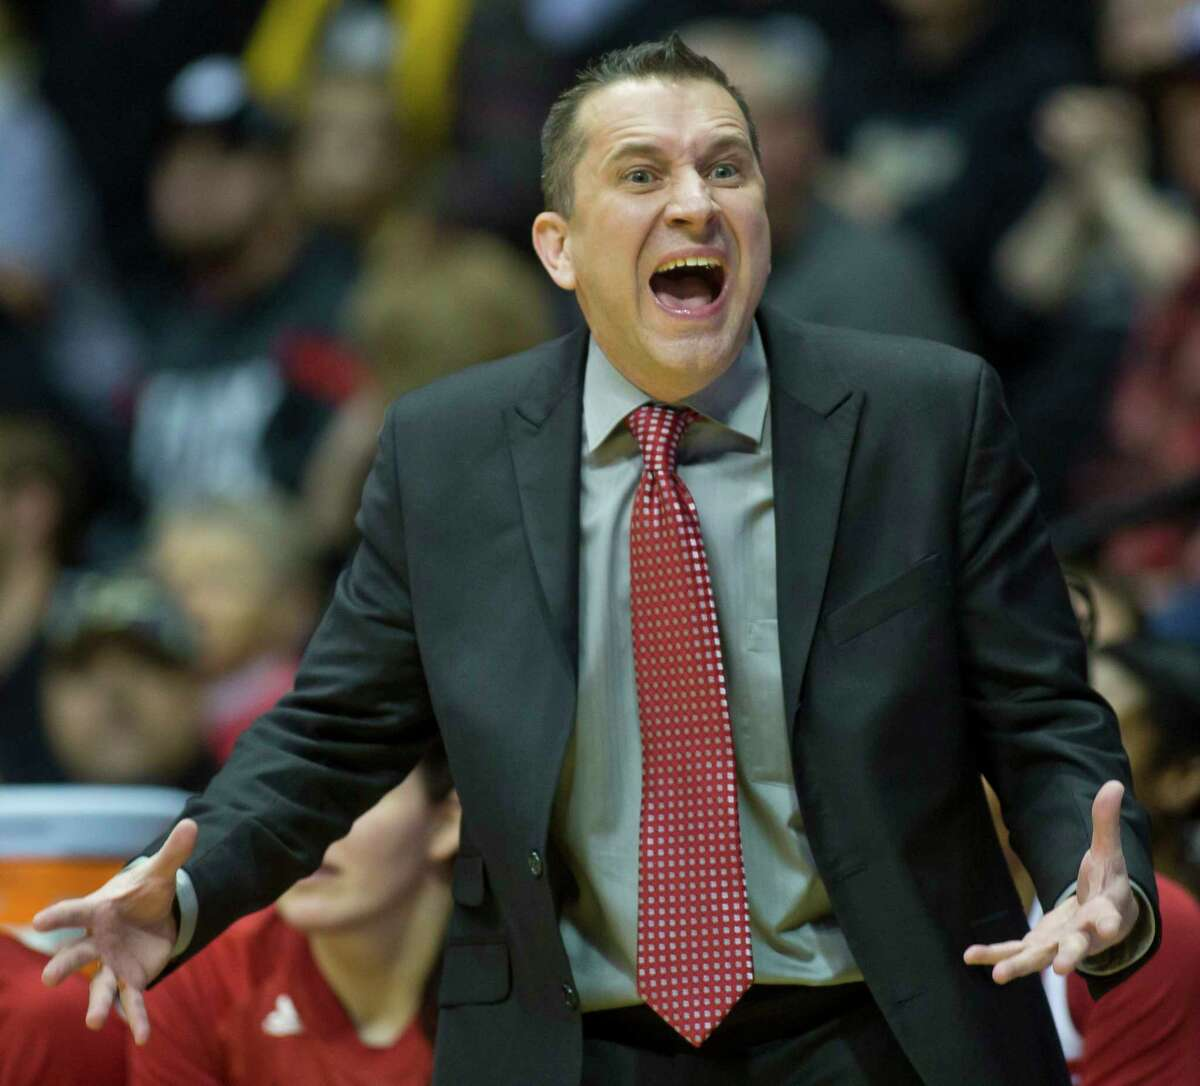 Curt Miller has worked his way up through the women's basketball coaching ranks. Now he'll get his first chance to lead a WNBA team. The Connecticut Sun hired Miller as their new coach on Thursday.